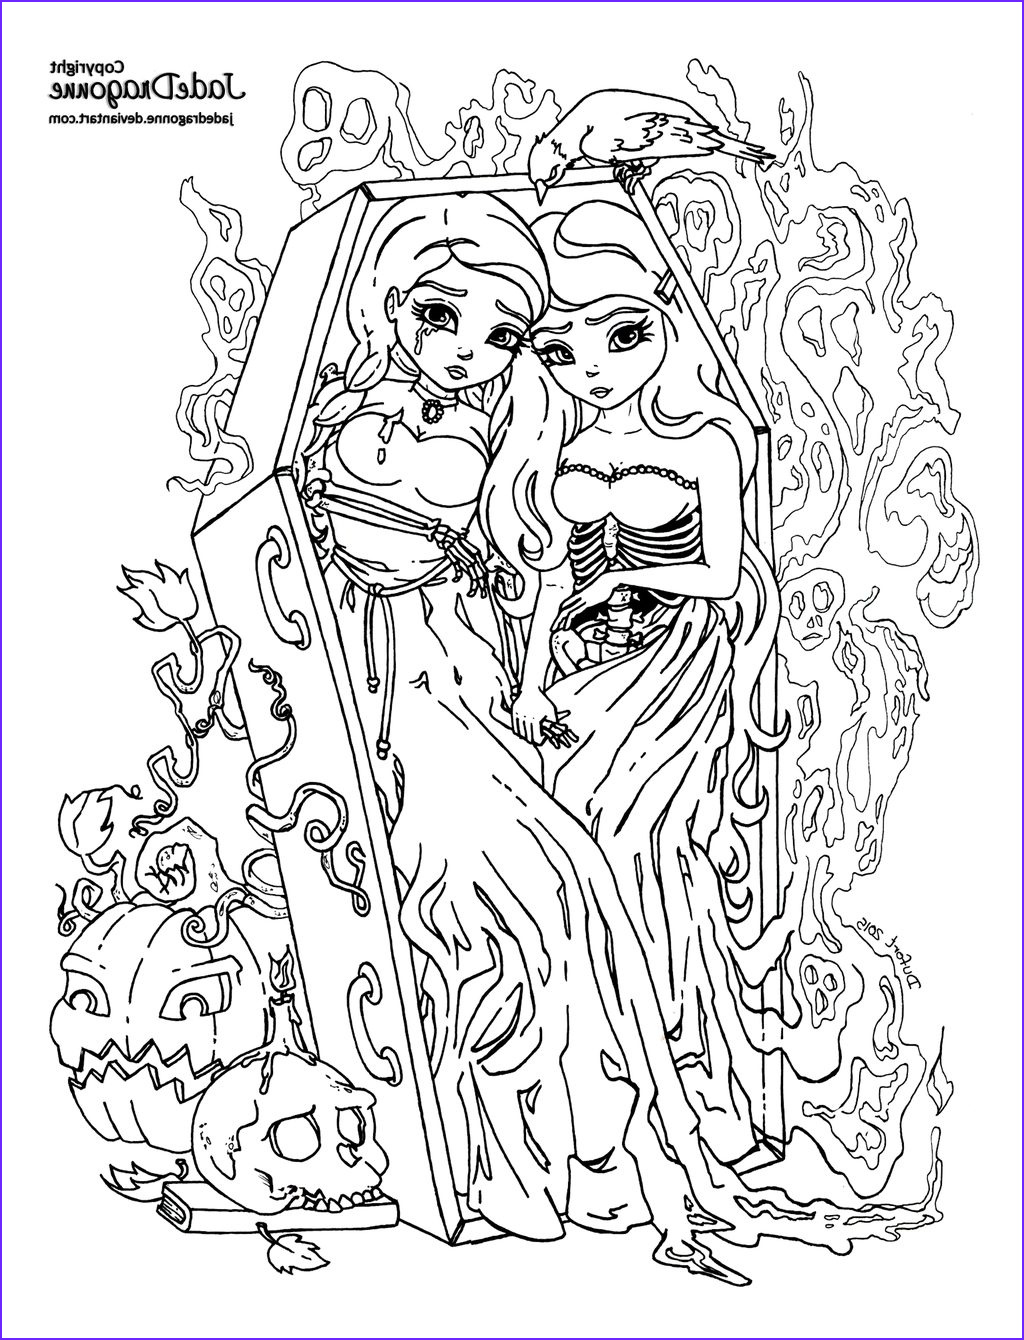 Free Halloween Coloring Pages for Adults Inspirational Photos the Twins 2015 Halloween Coloring Contest by